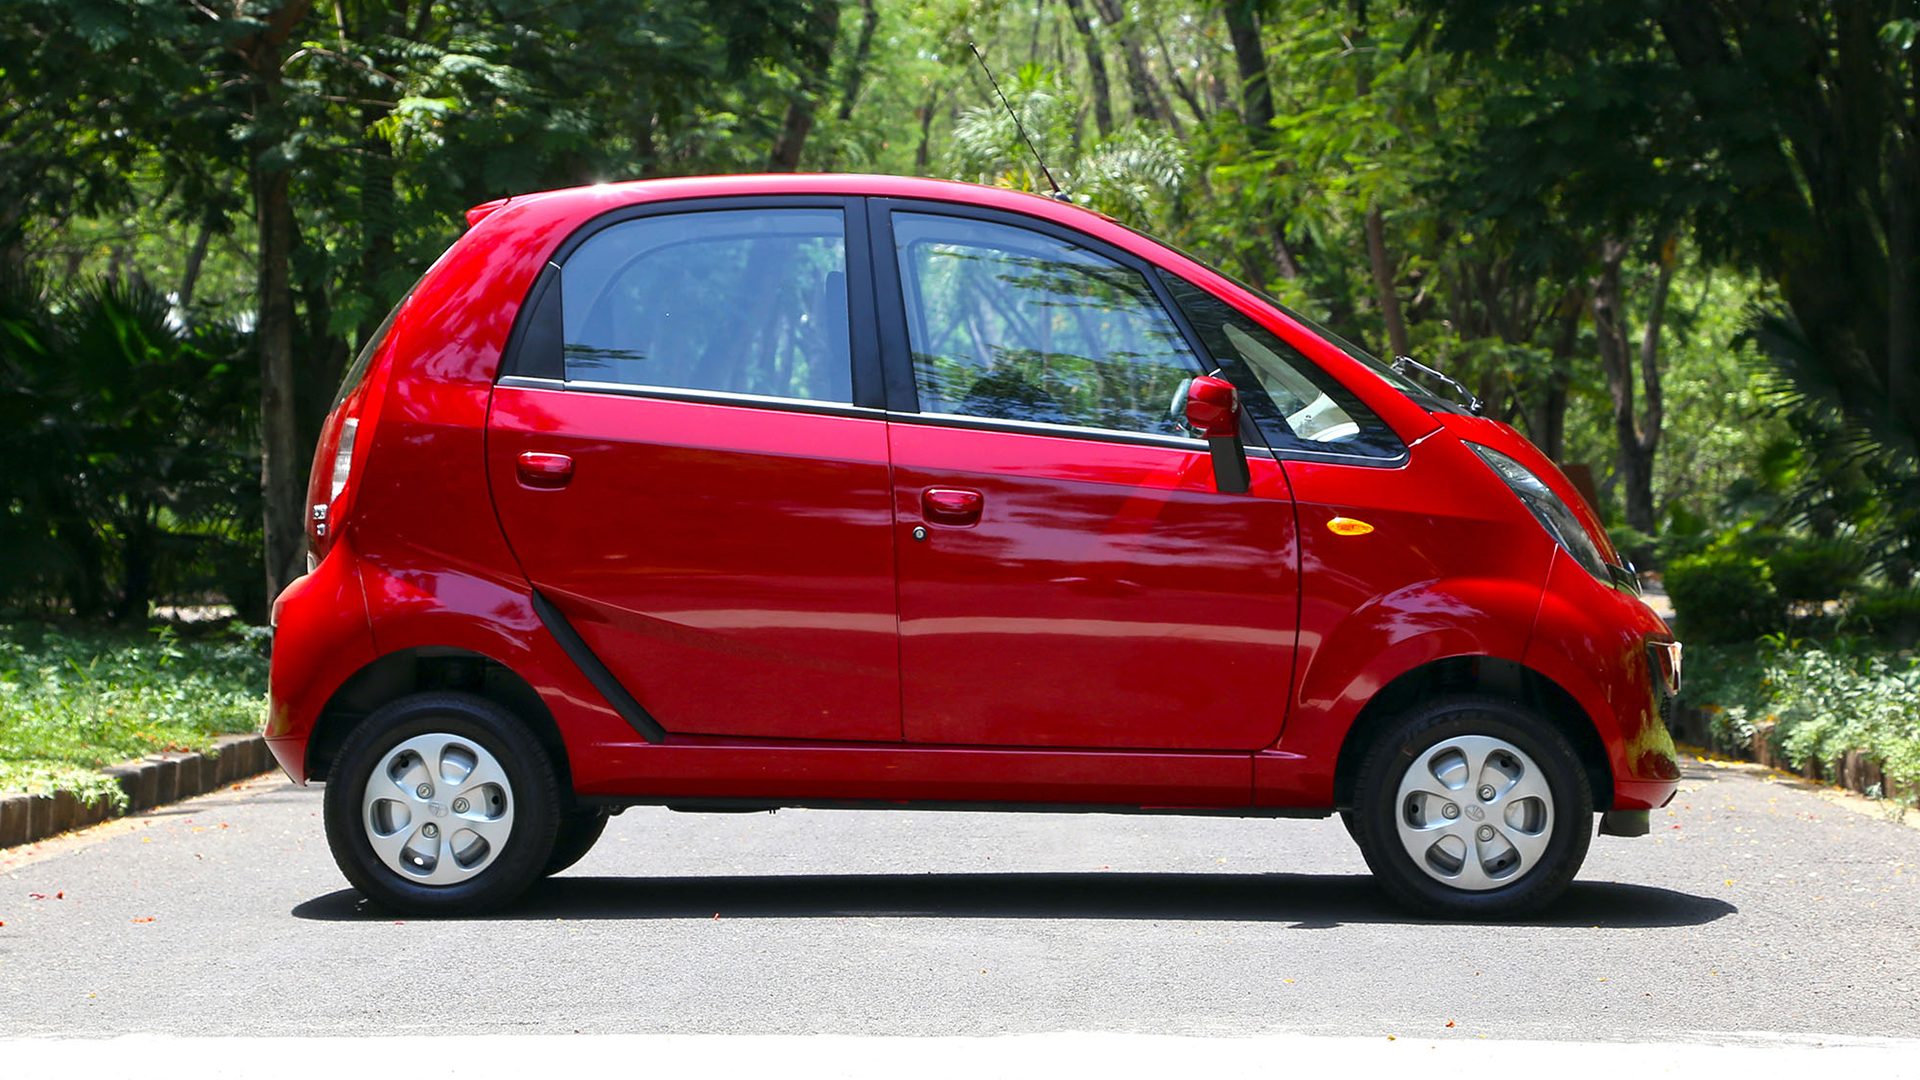 Tata Nano 2015 XE - Price, Mileage, Reviews, Specification ...